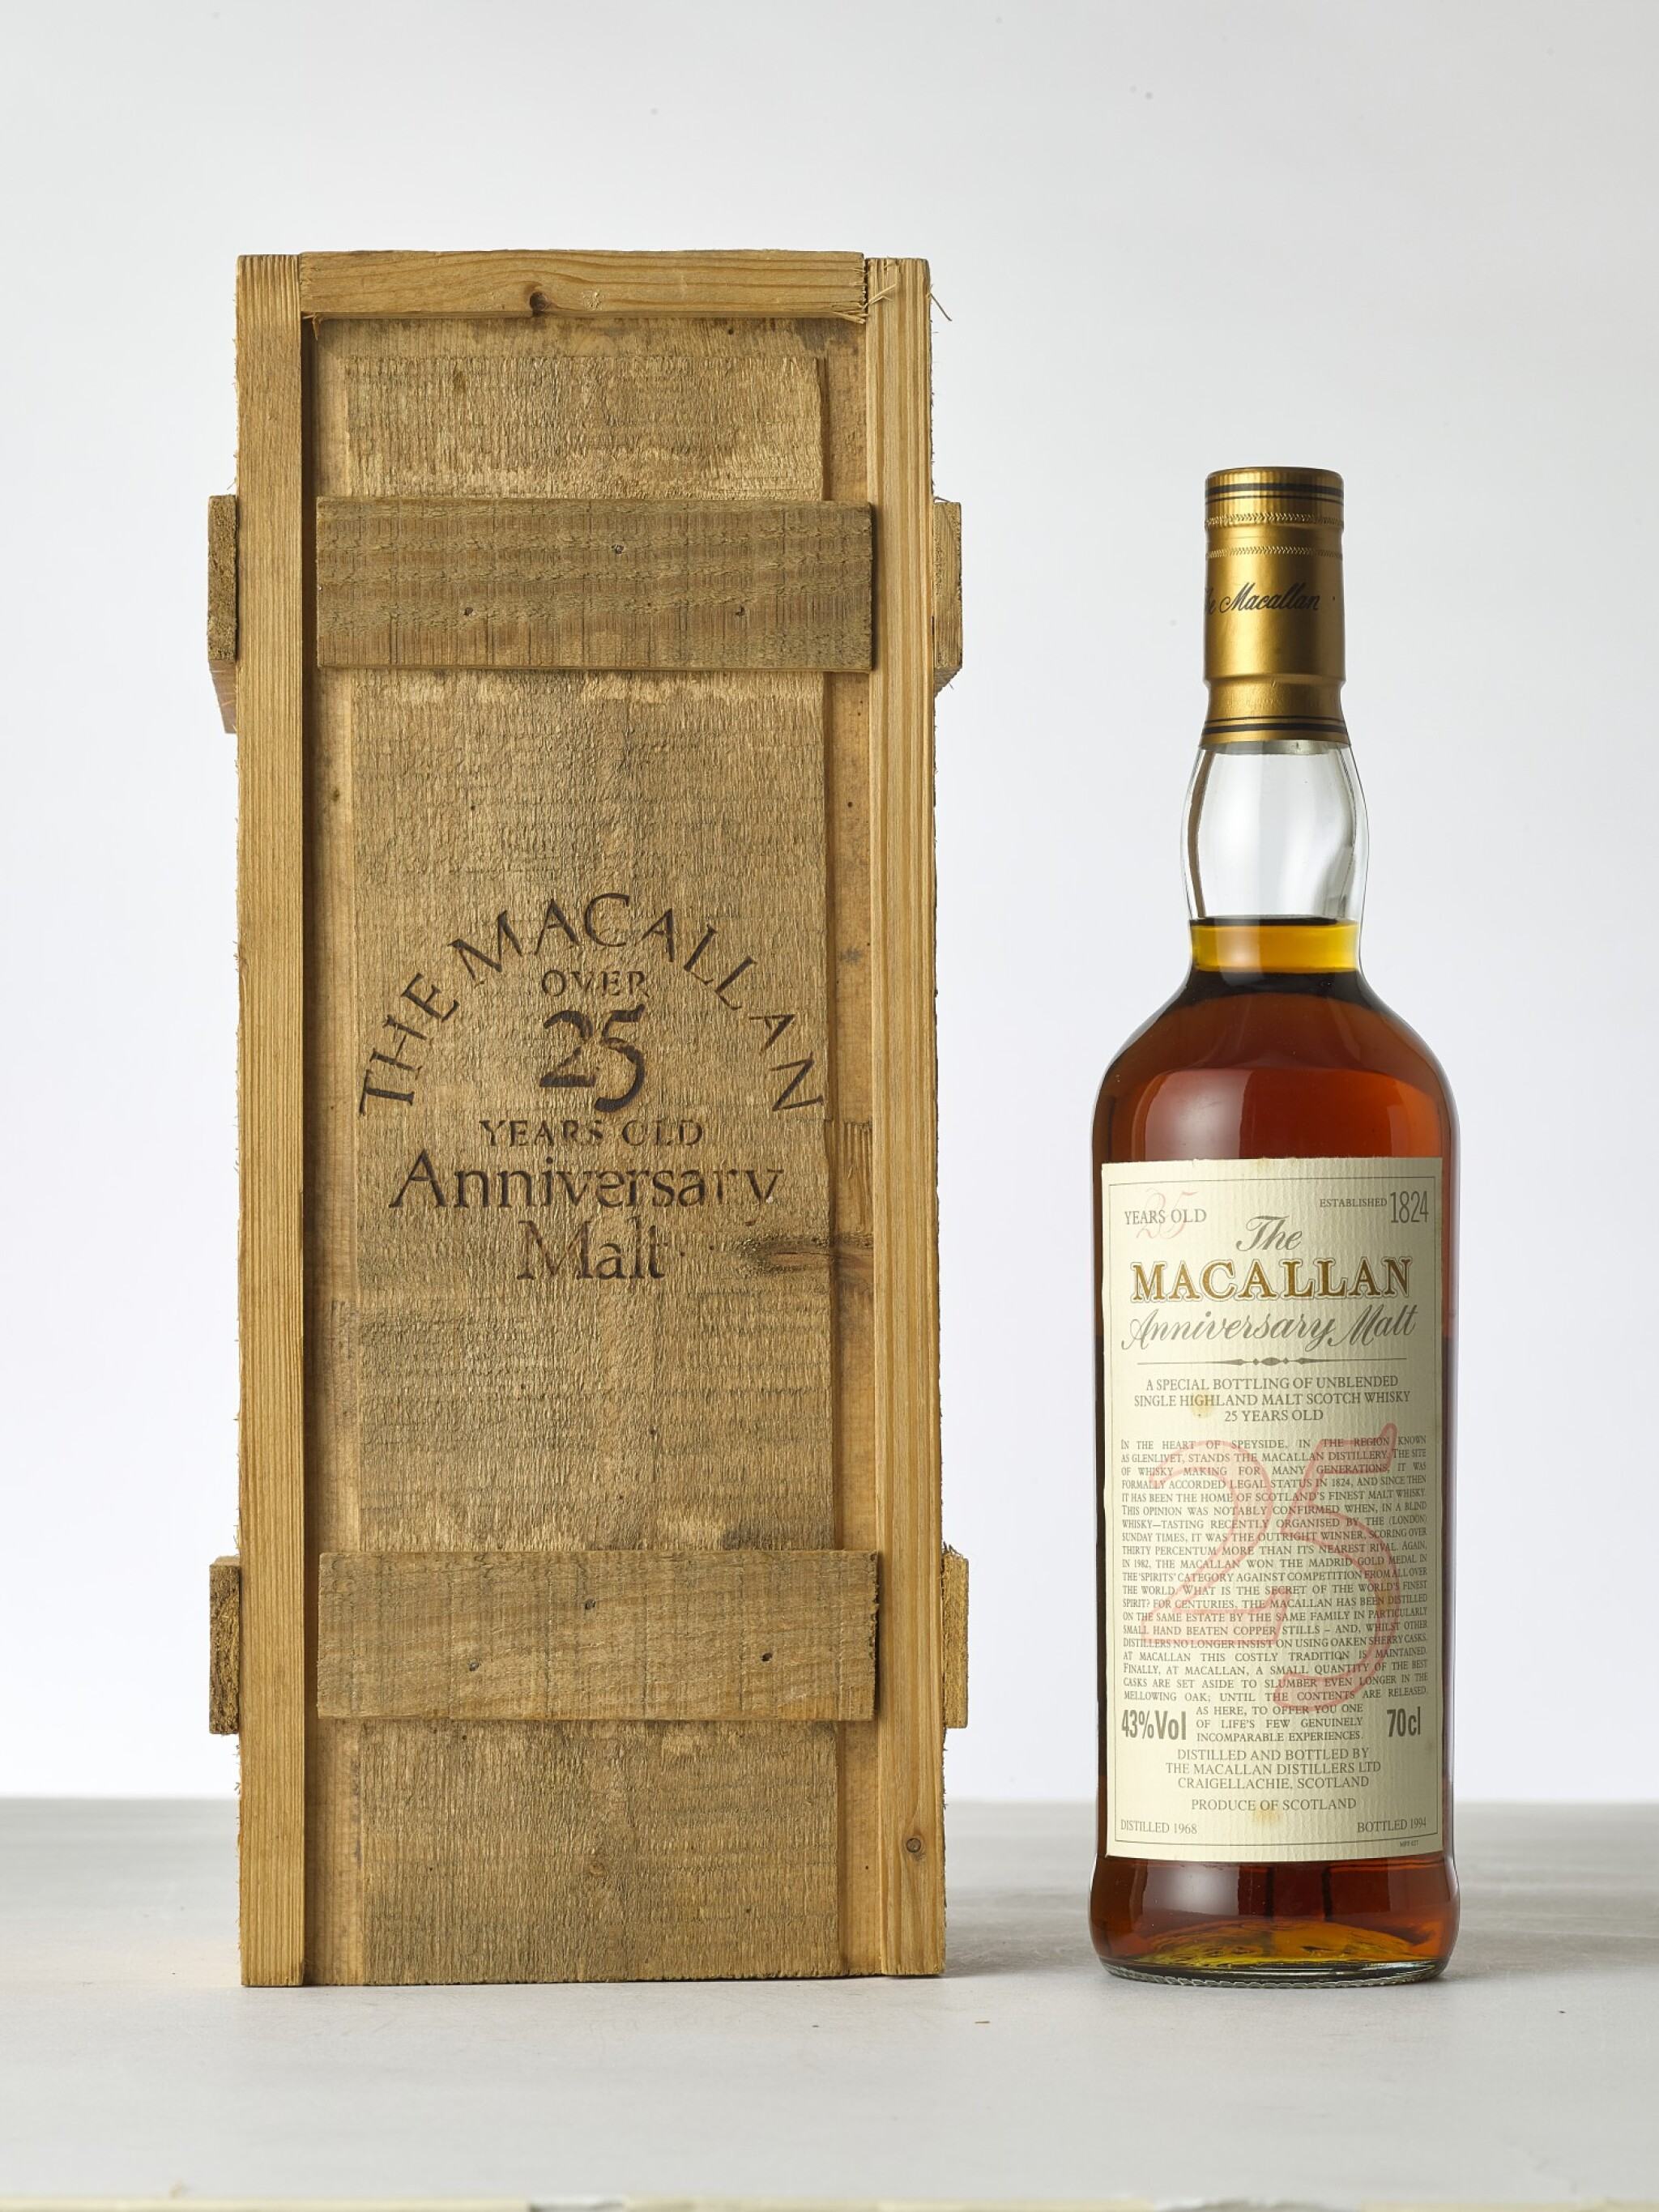 View 1 of Lot 2007. The Macallan 25 Year Old Anniversary Malt 43.0 abv 1968 (1 BT70).